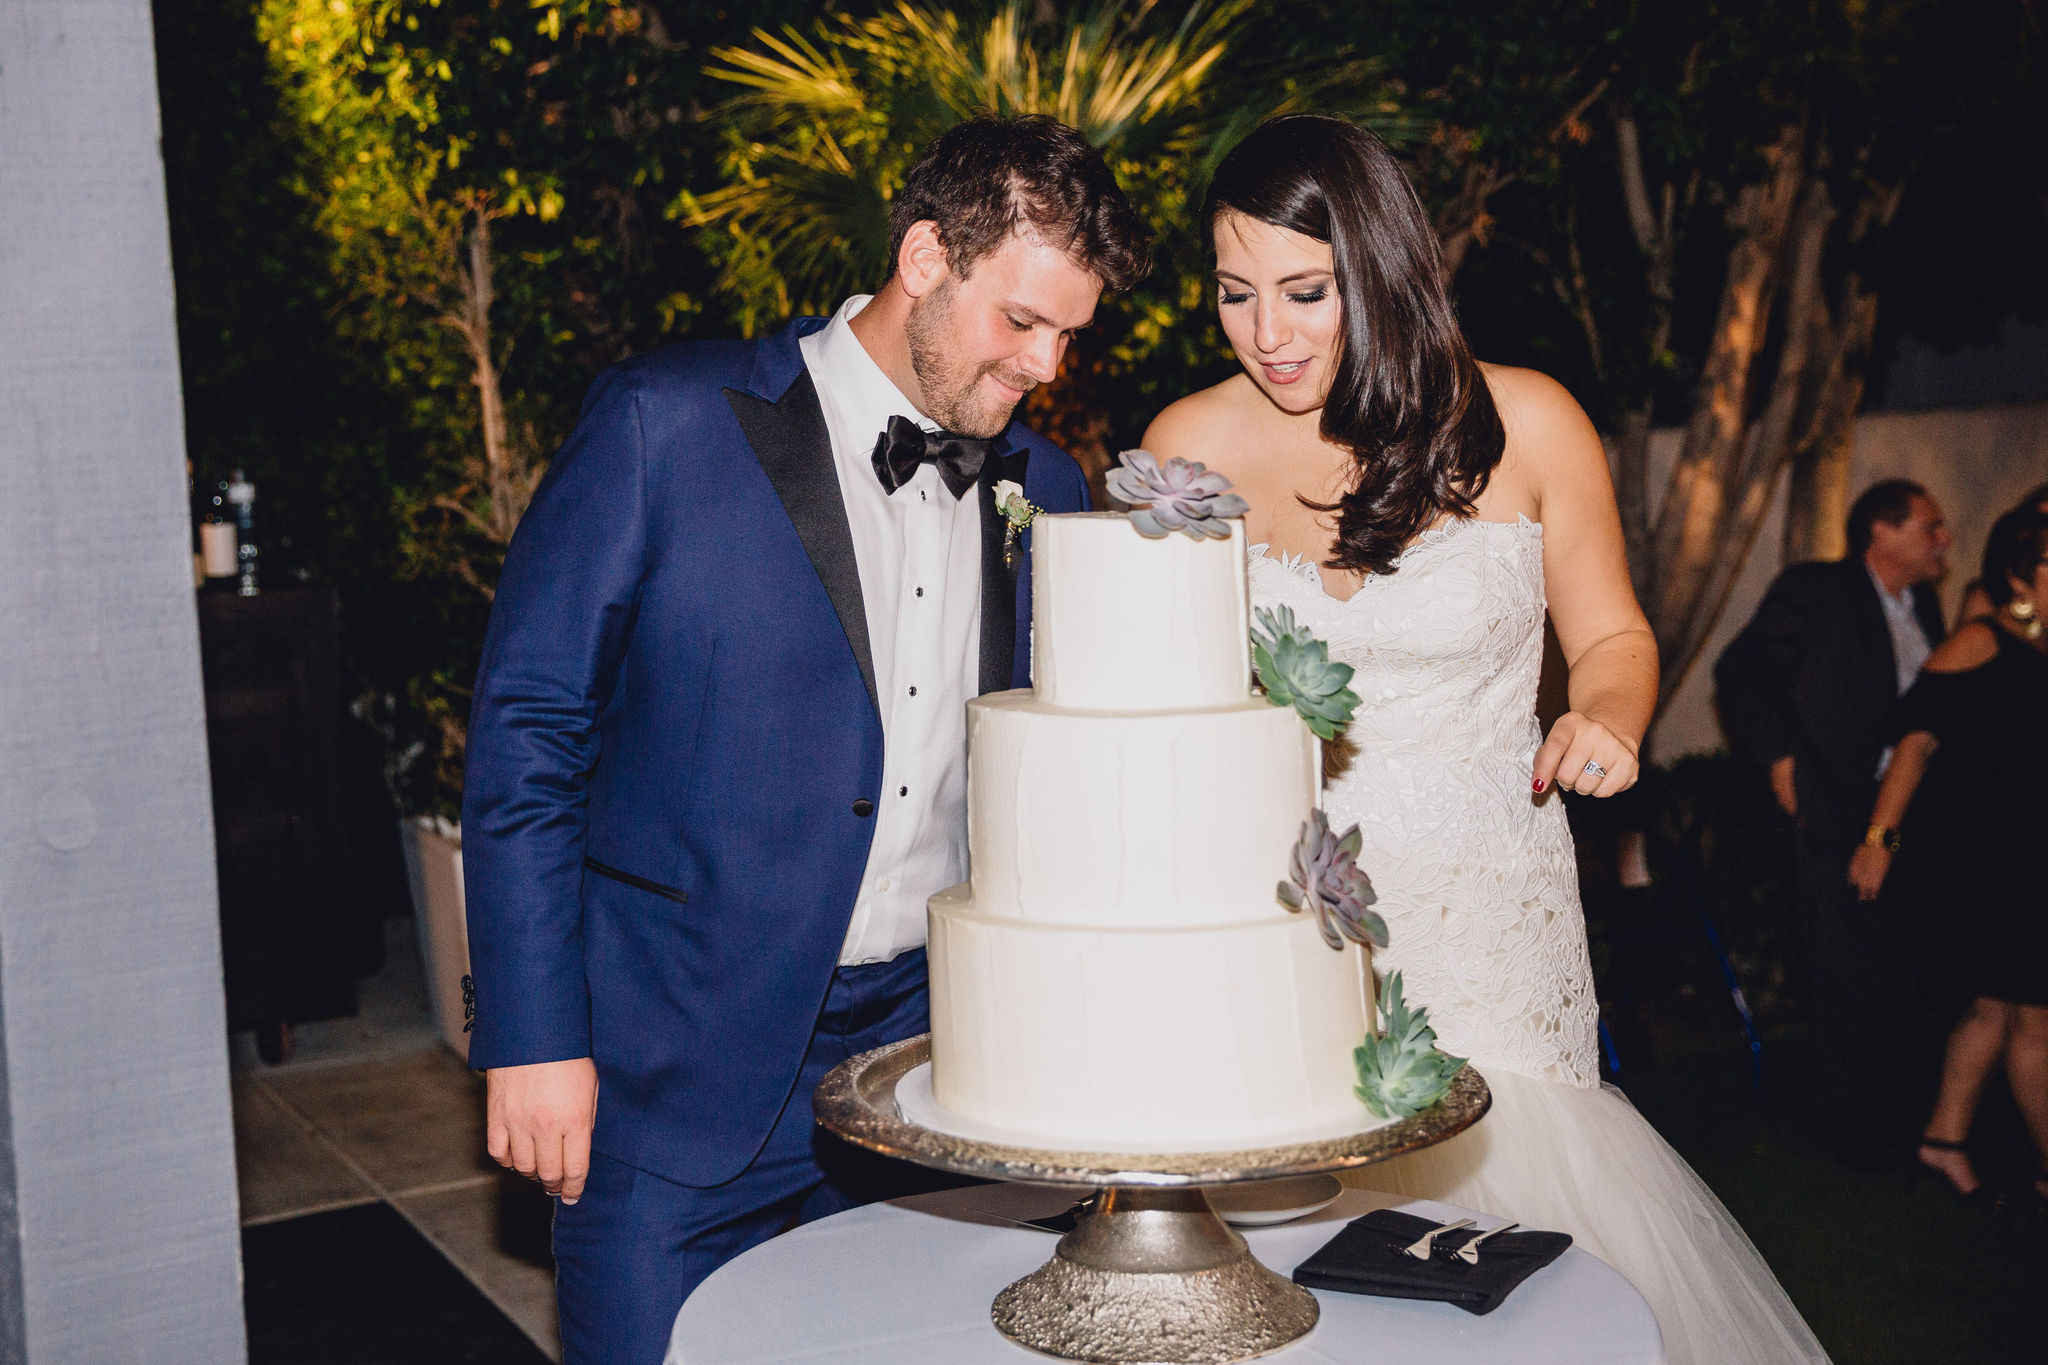 Cake Cutting | Avalon Palm Springs